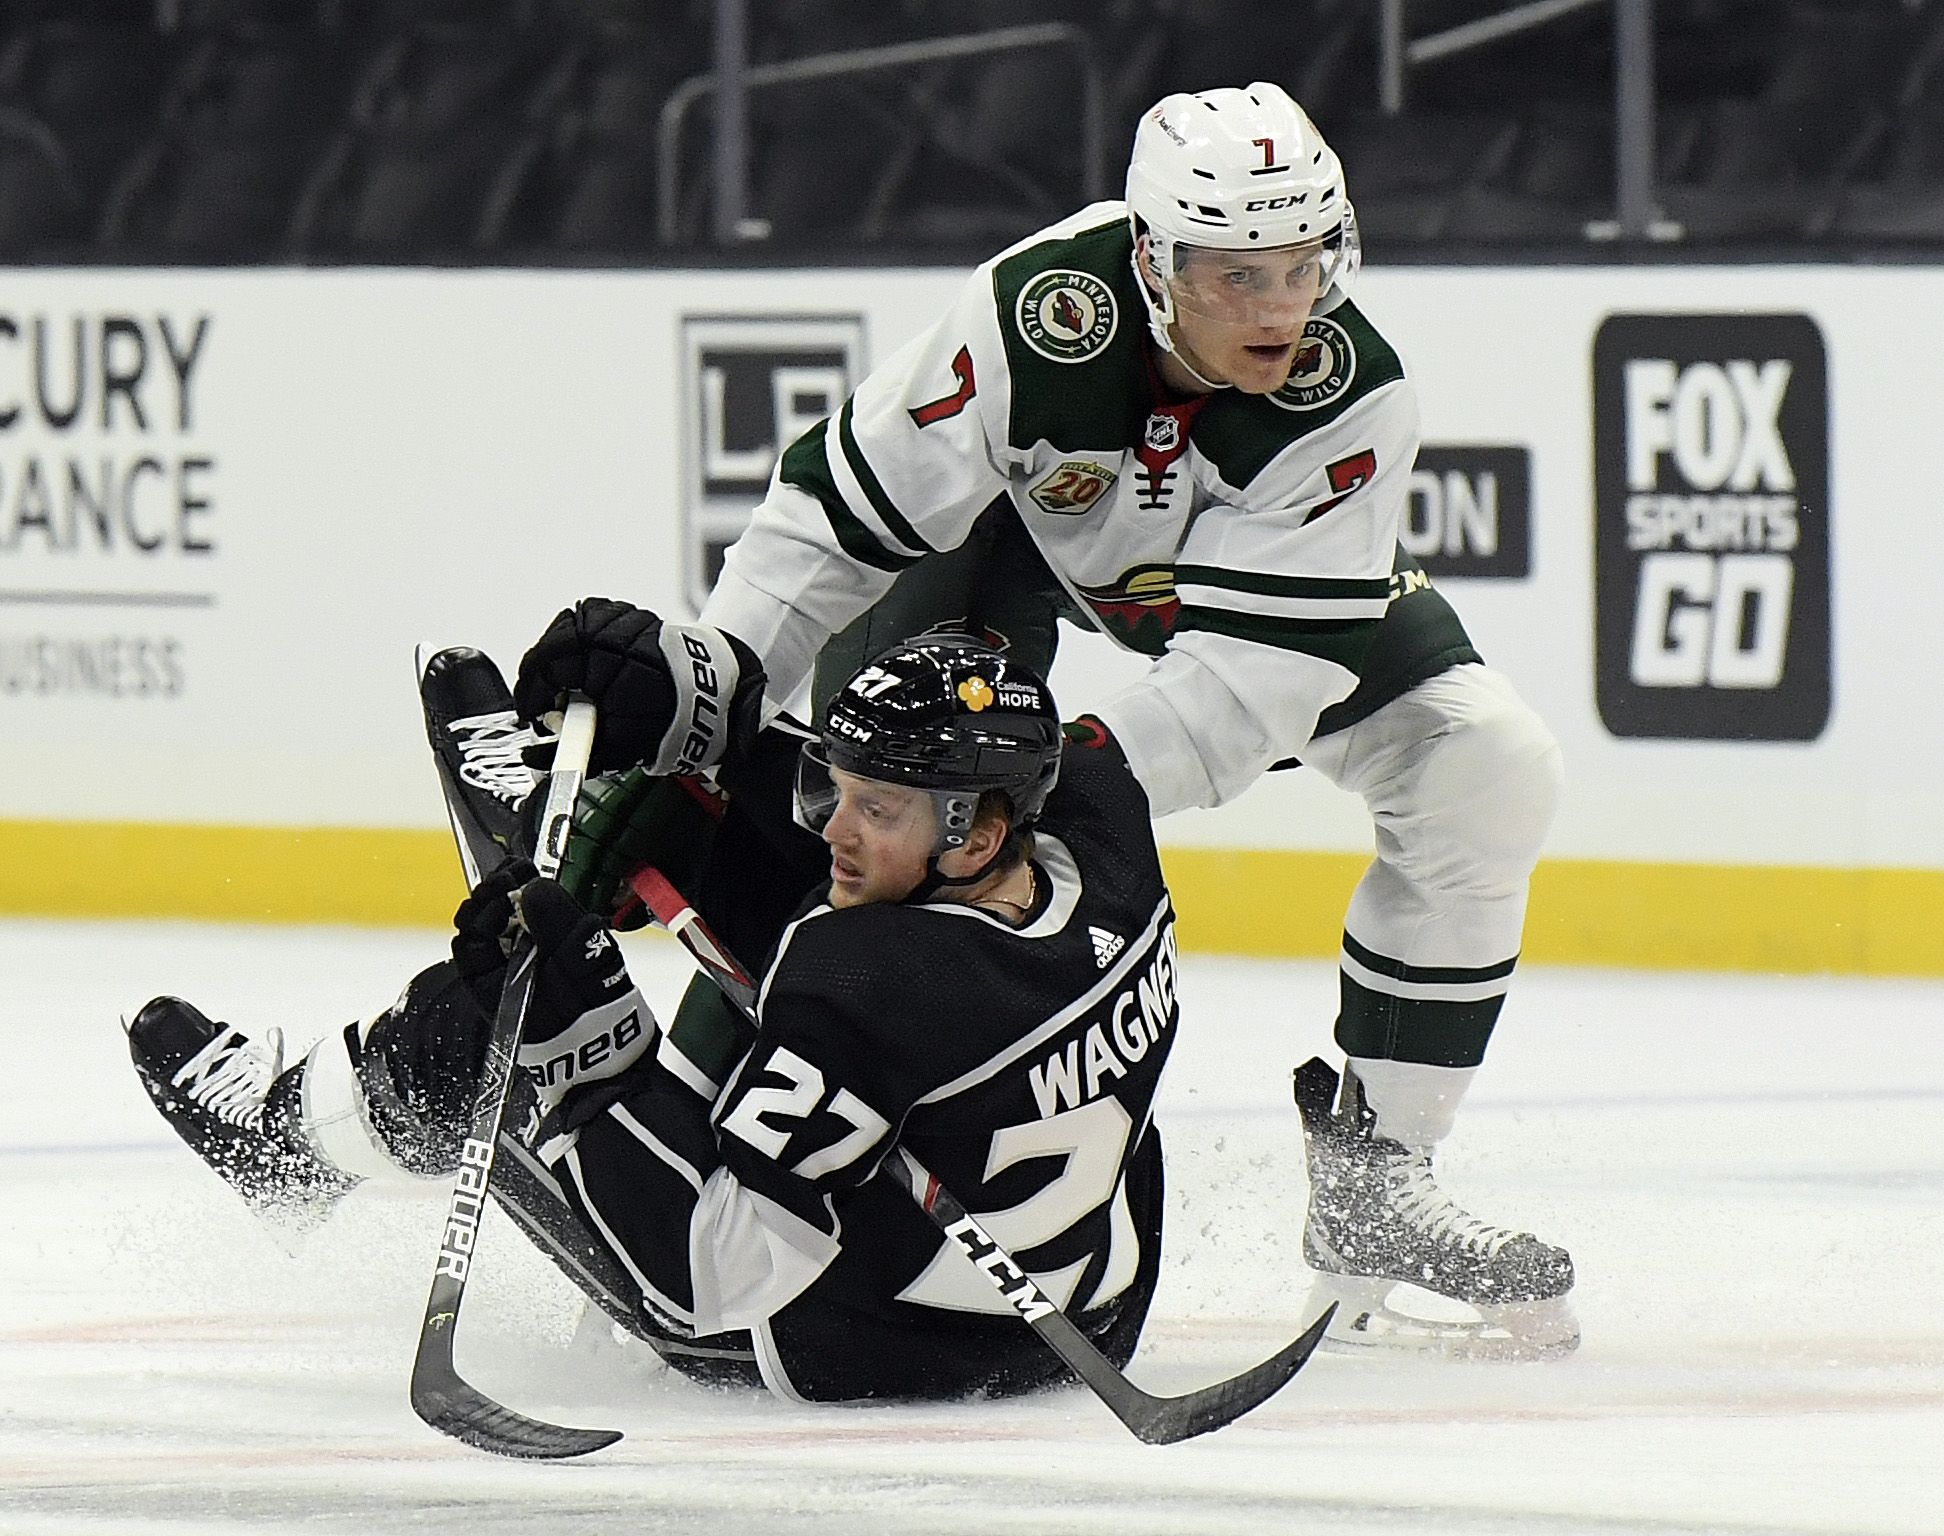 Austin Wagner #27 of the Los Angeles Kings is knocked to the ice by Nico Sturm #7 of the Minnesota Wild during the first period in the season opening game at Staples Center on January 14, 2021 in Los Angeles, California.